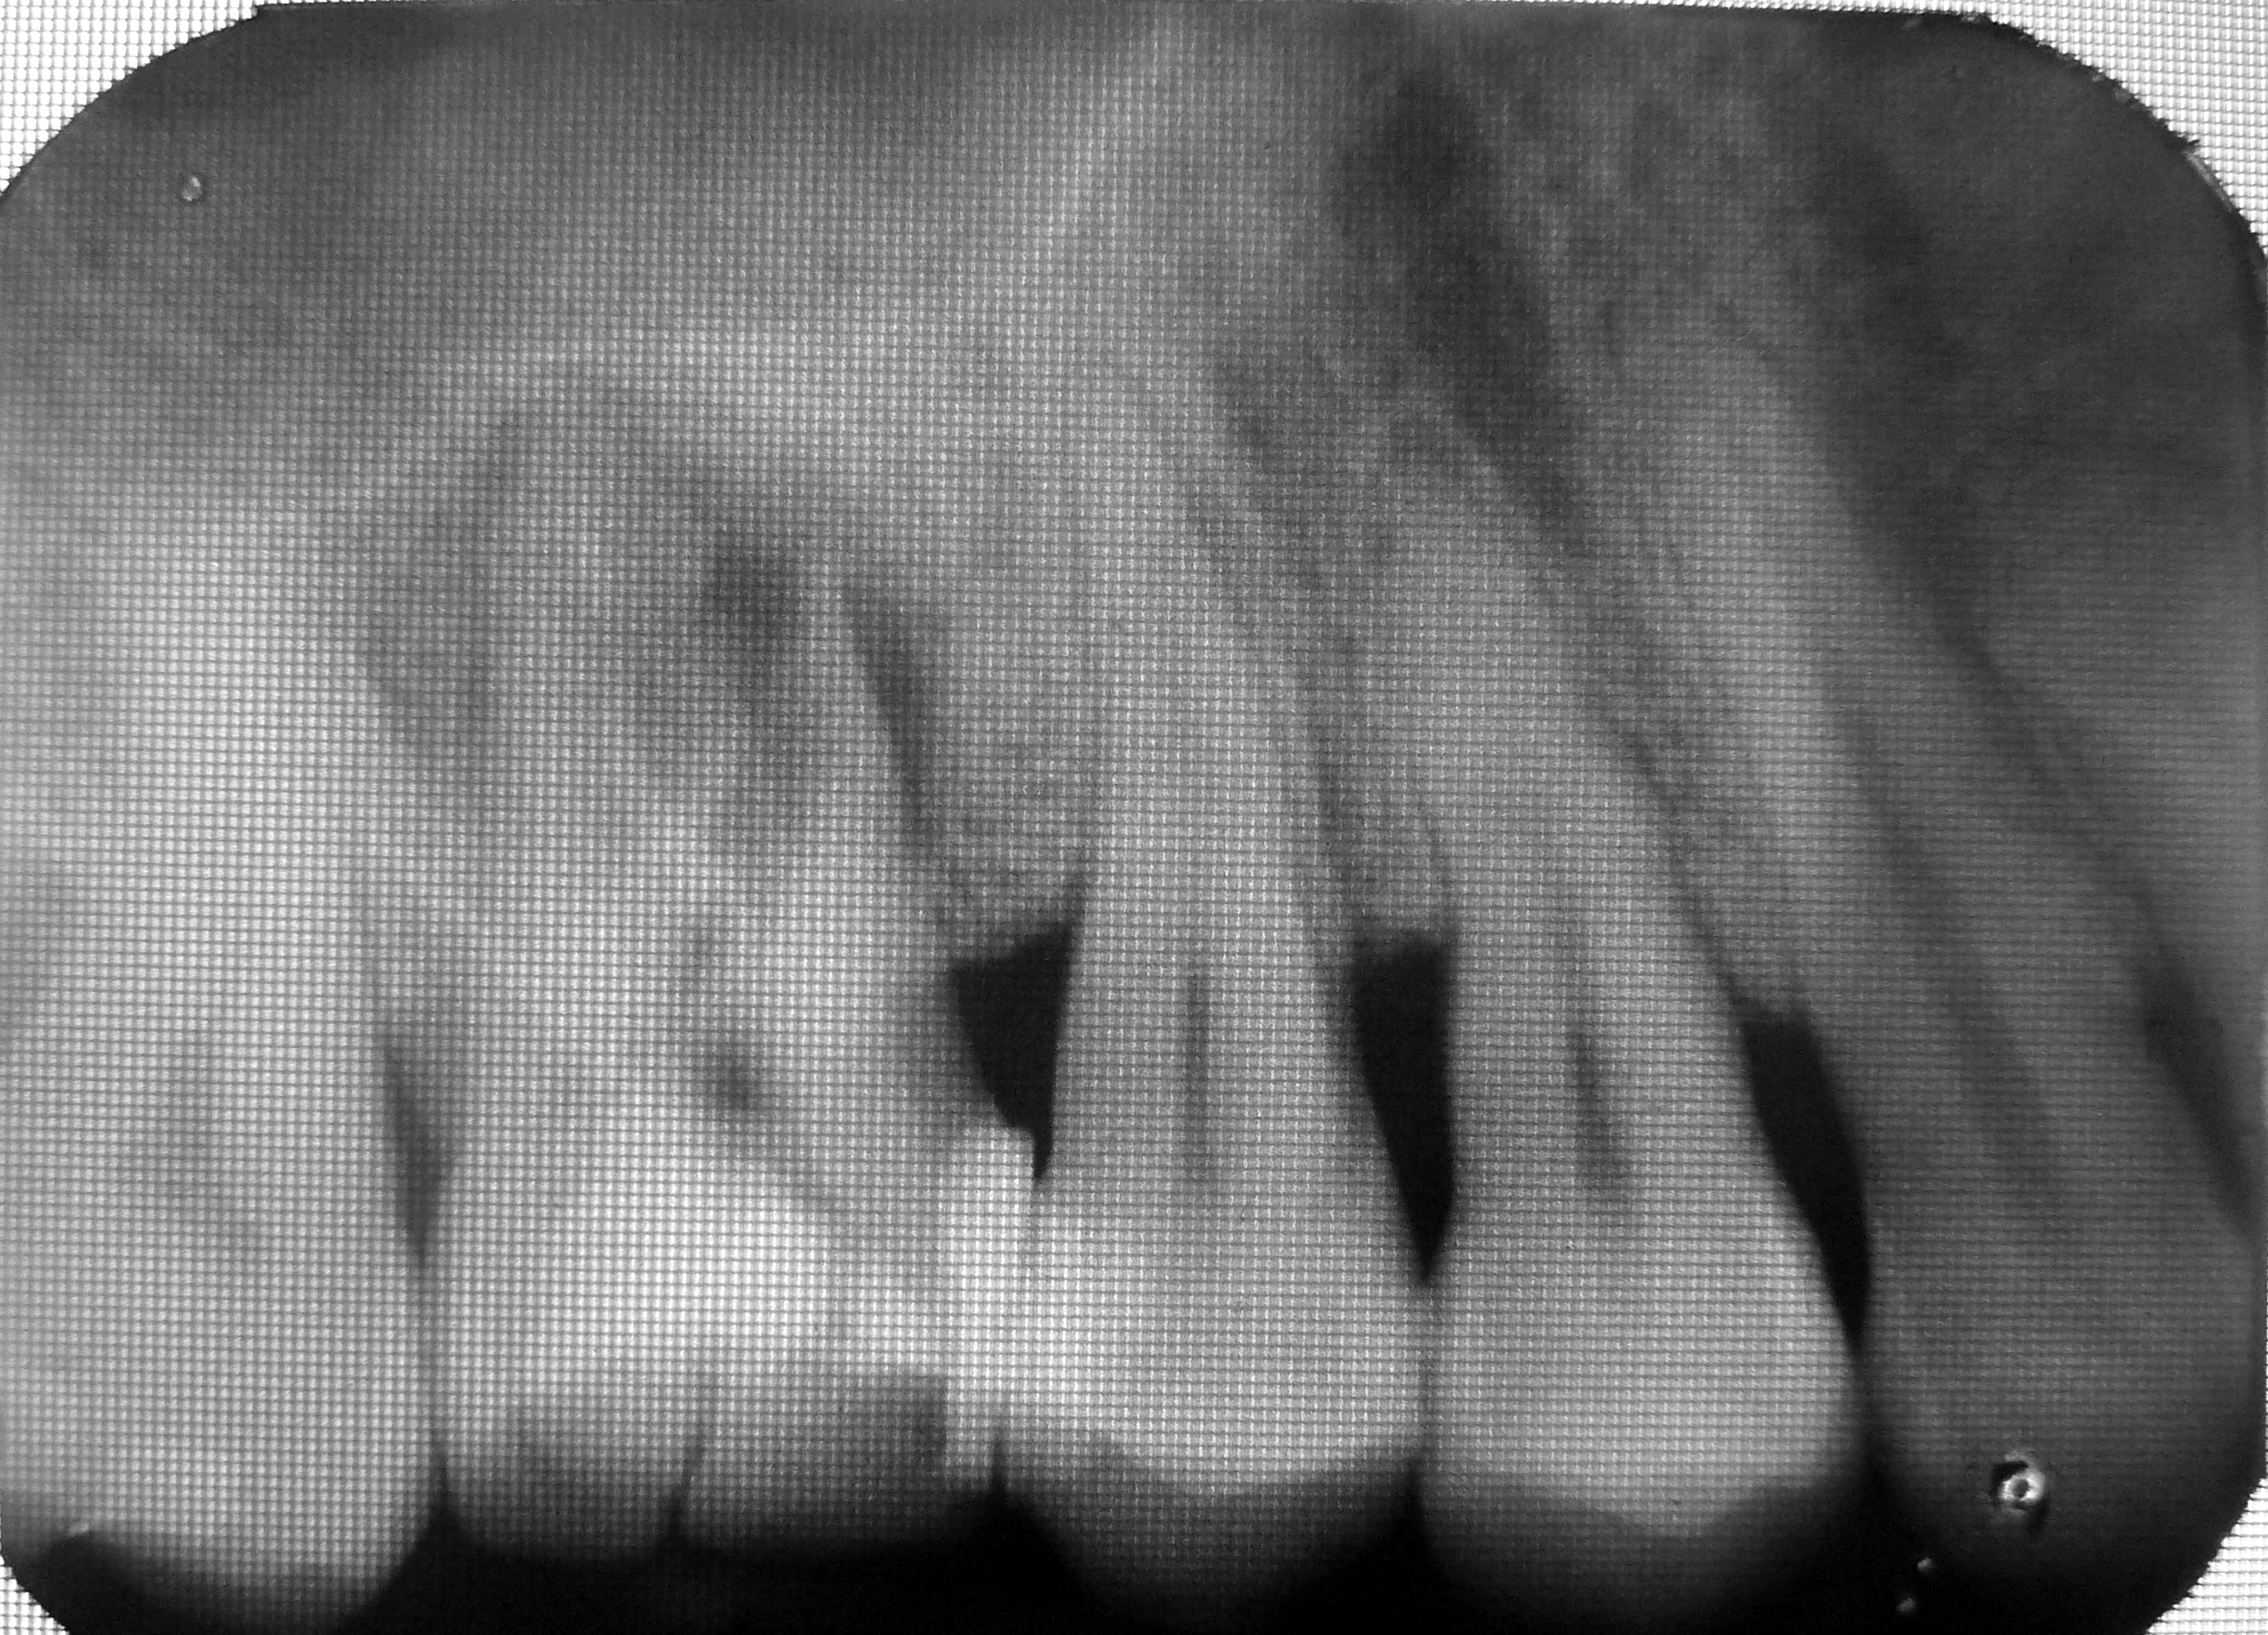 x-ray radiography showing fracture